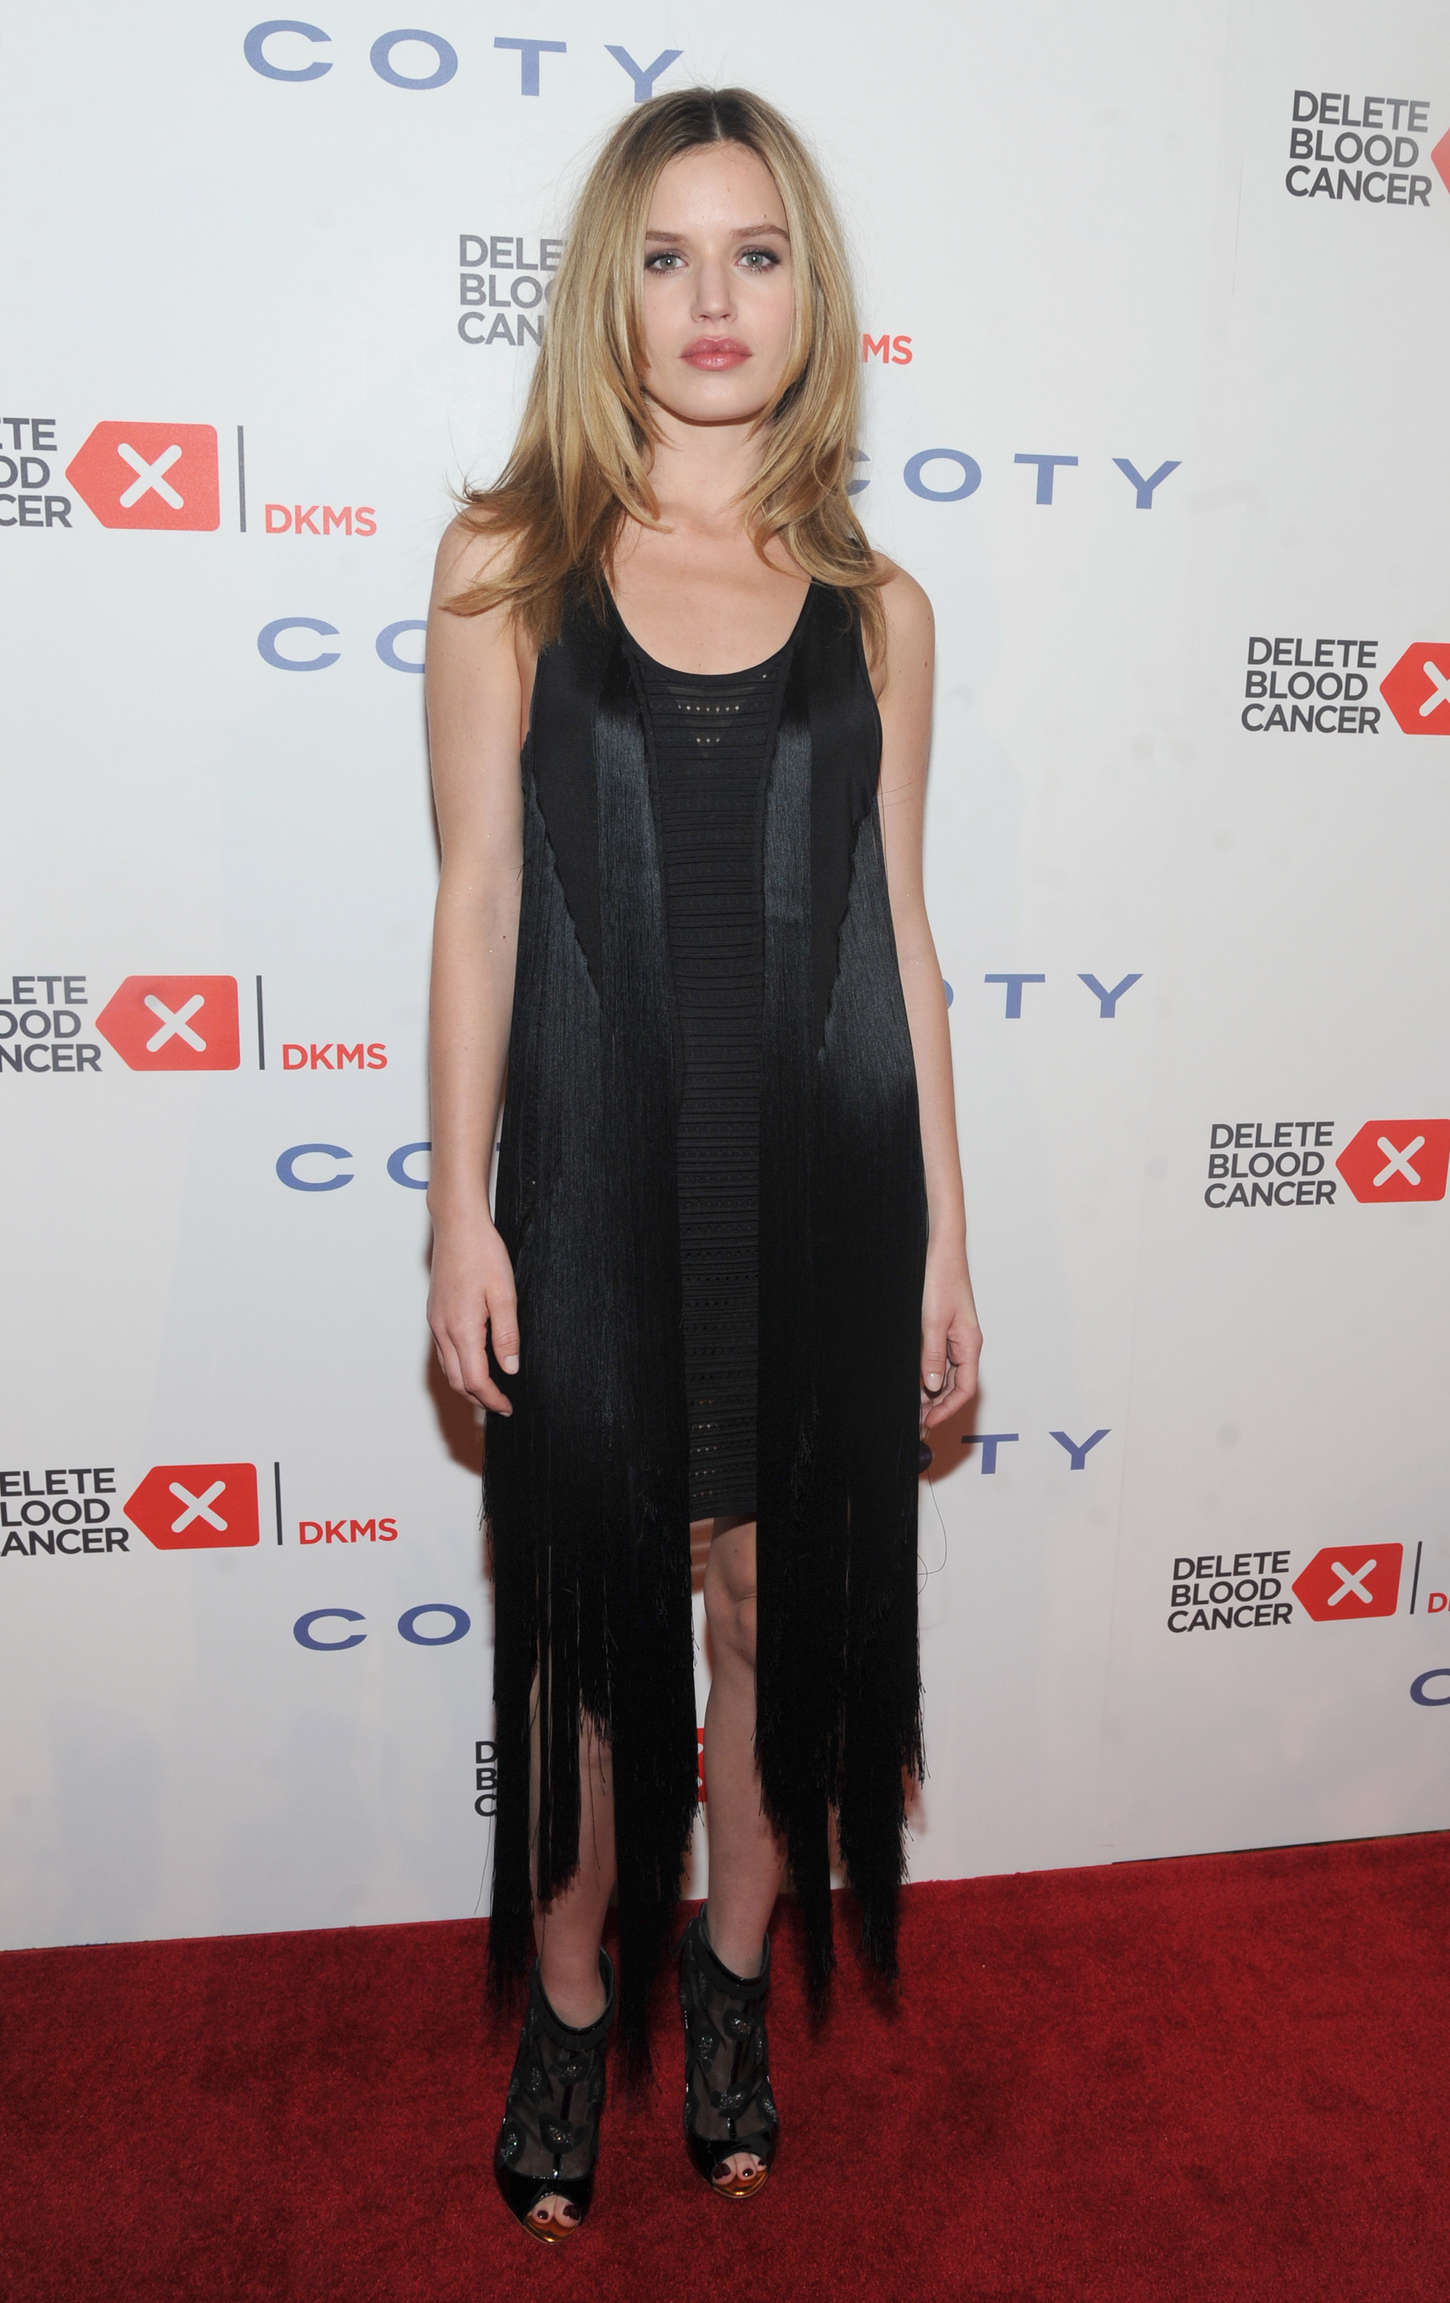 Georgia May Jagger Annual Delete Blood Cancer DKMS Gala in New York